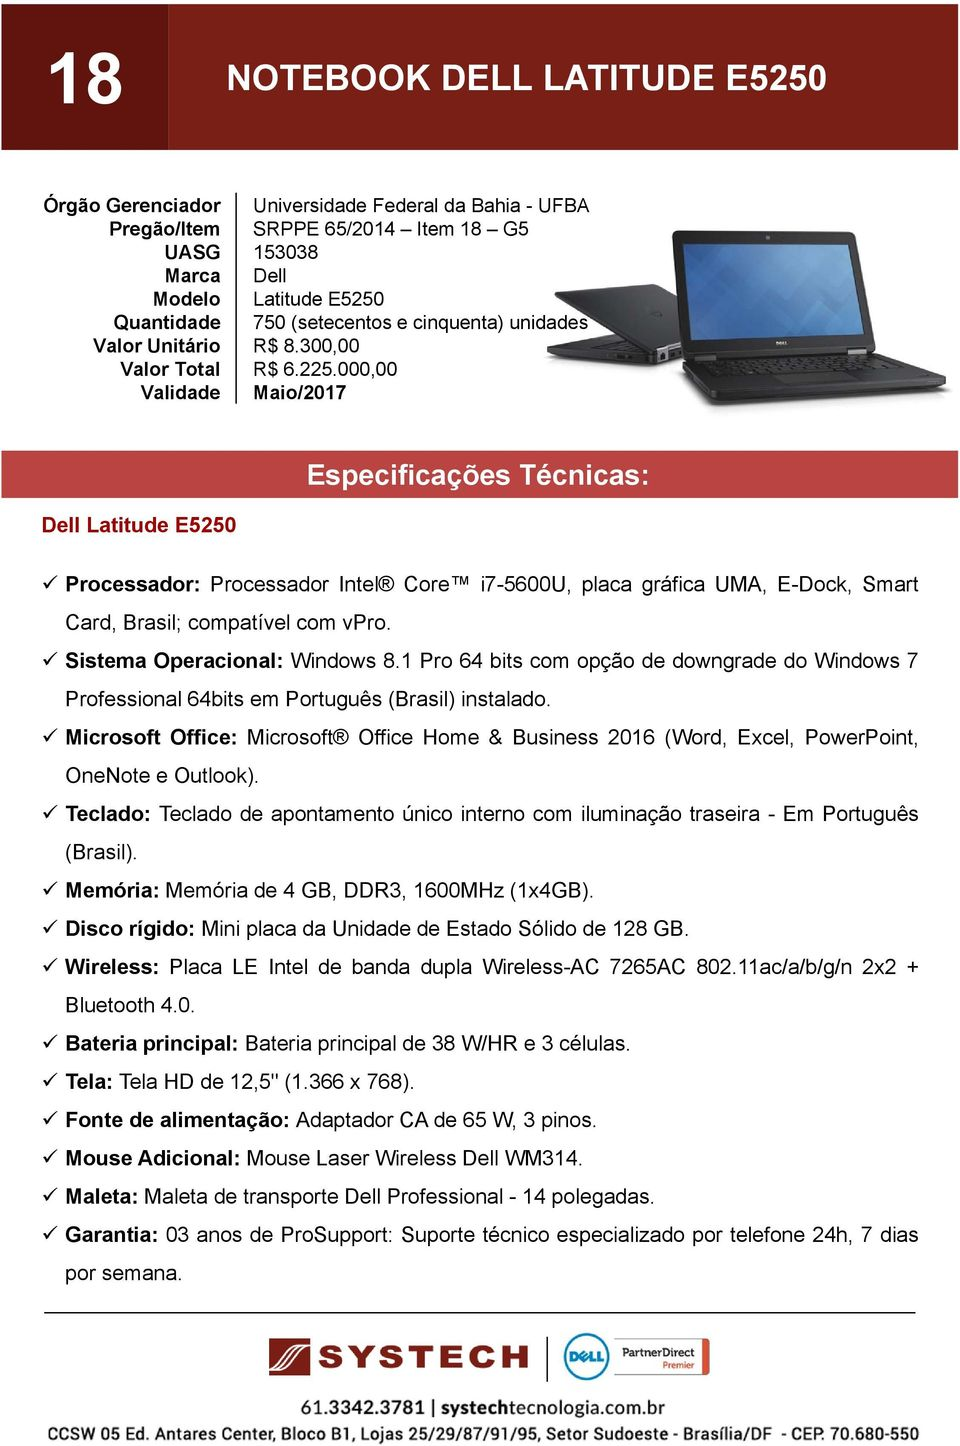 1 Pro 64 bits com opção de downgrade do Windows 7 Microsoft Office: Microsoft Office Home & Business 2016 (Word, Excel, PowerPoint, OneNote e Outlook).